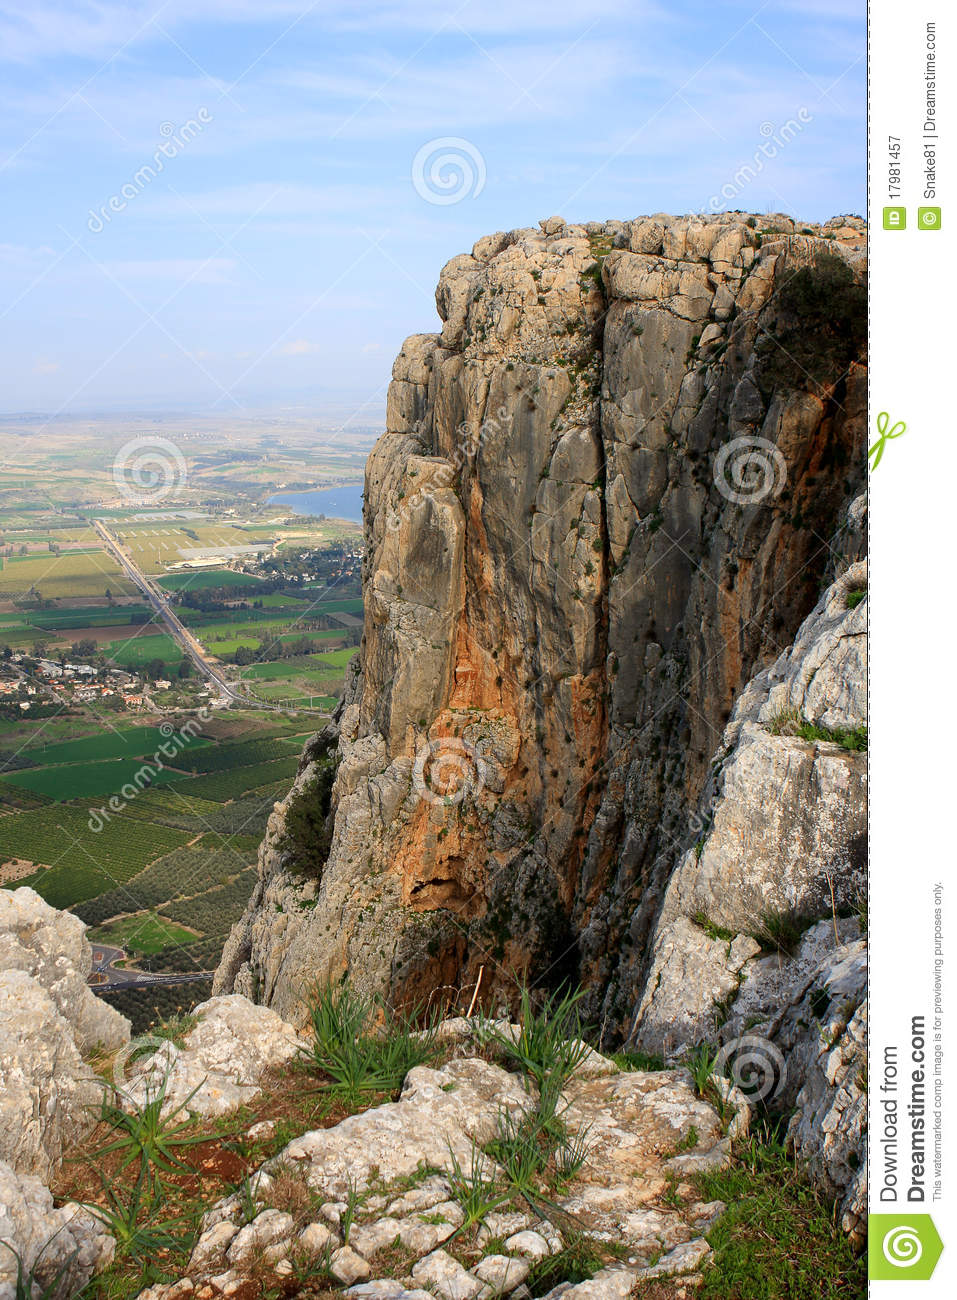 Arbel Mountain, Israel Royalty Free Stock Photography.